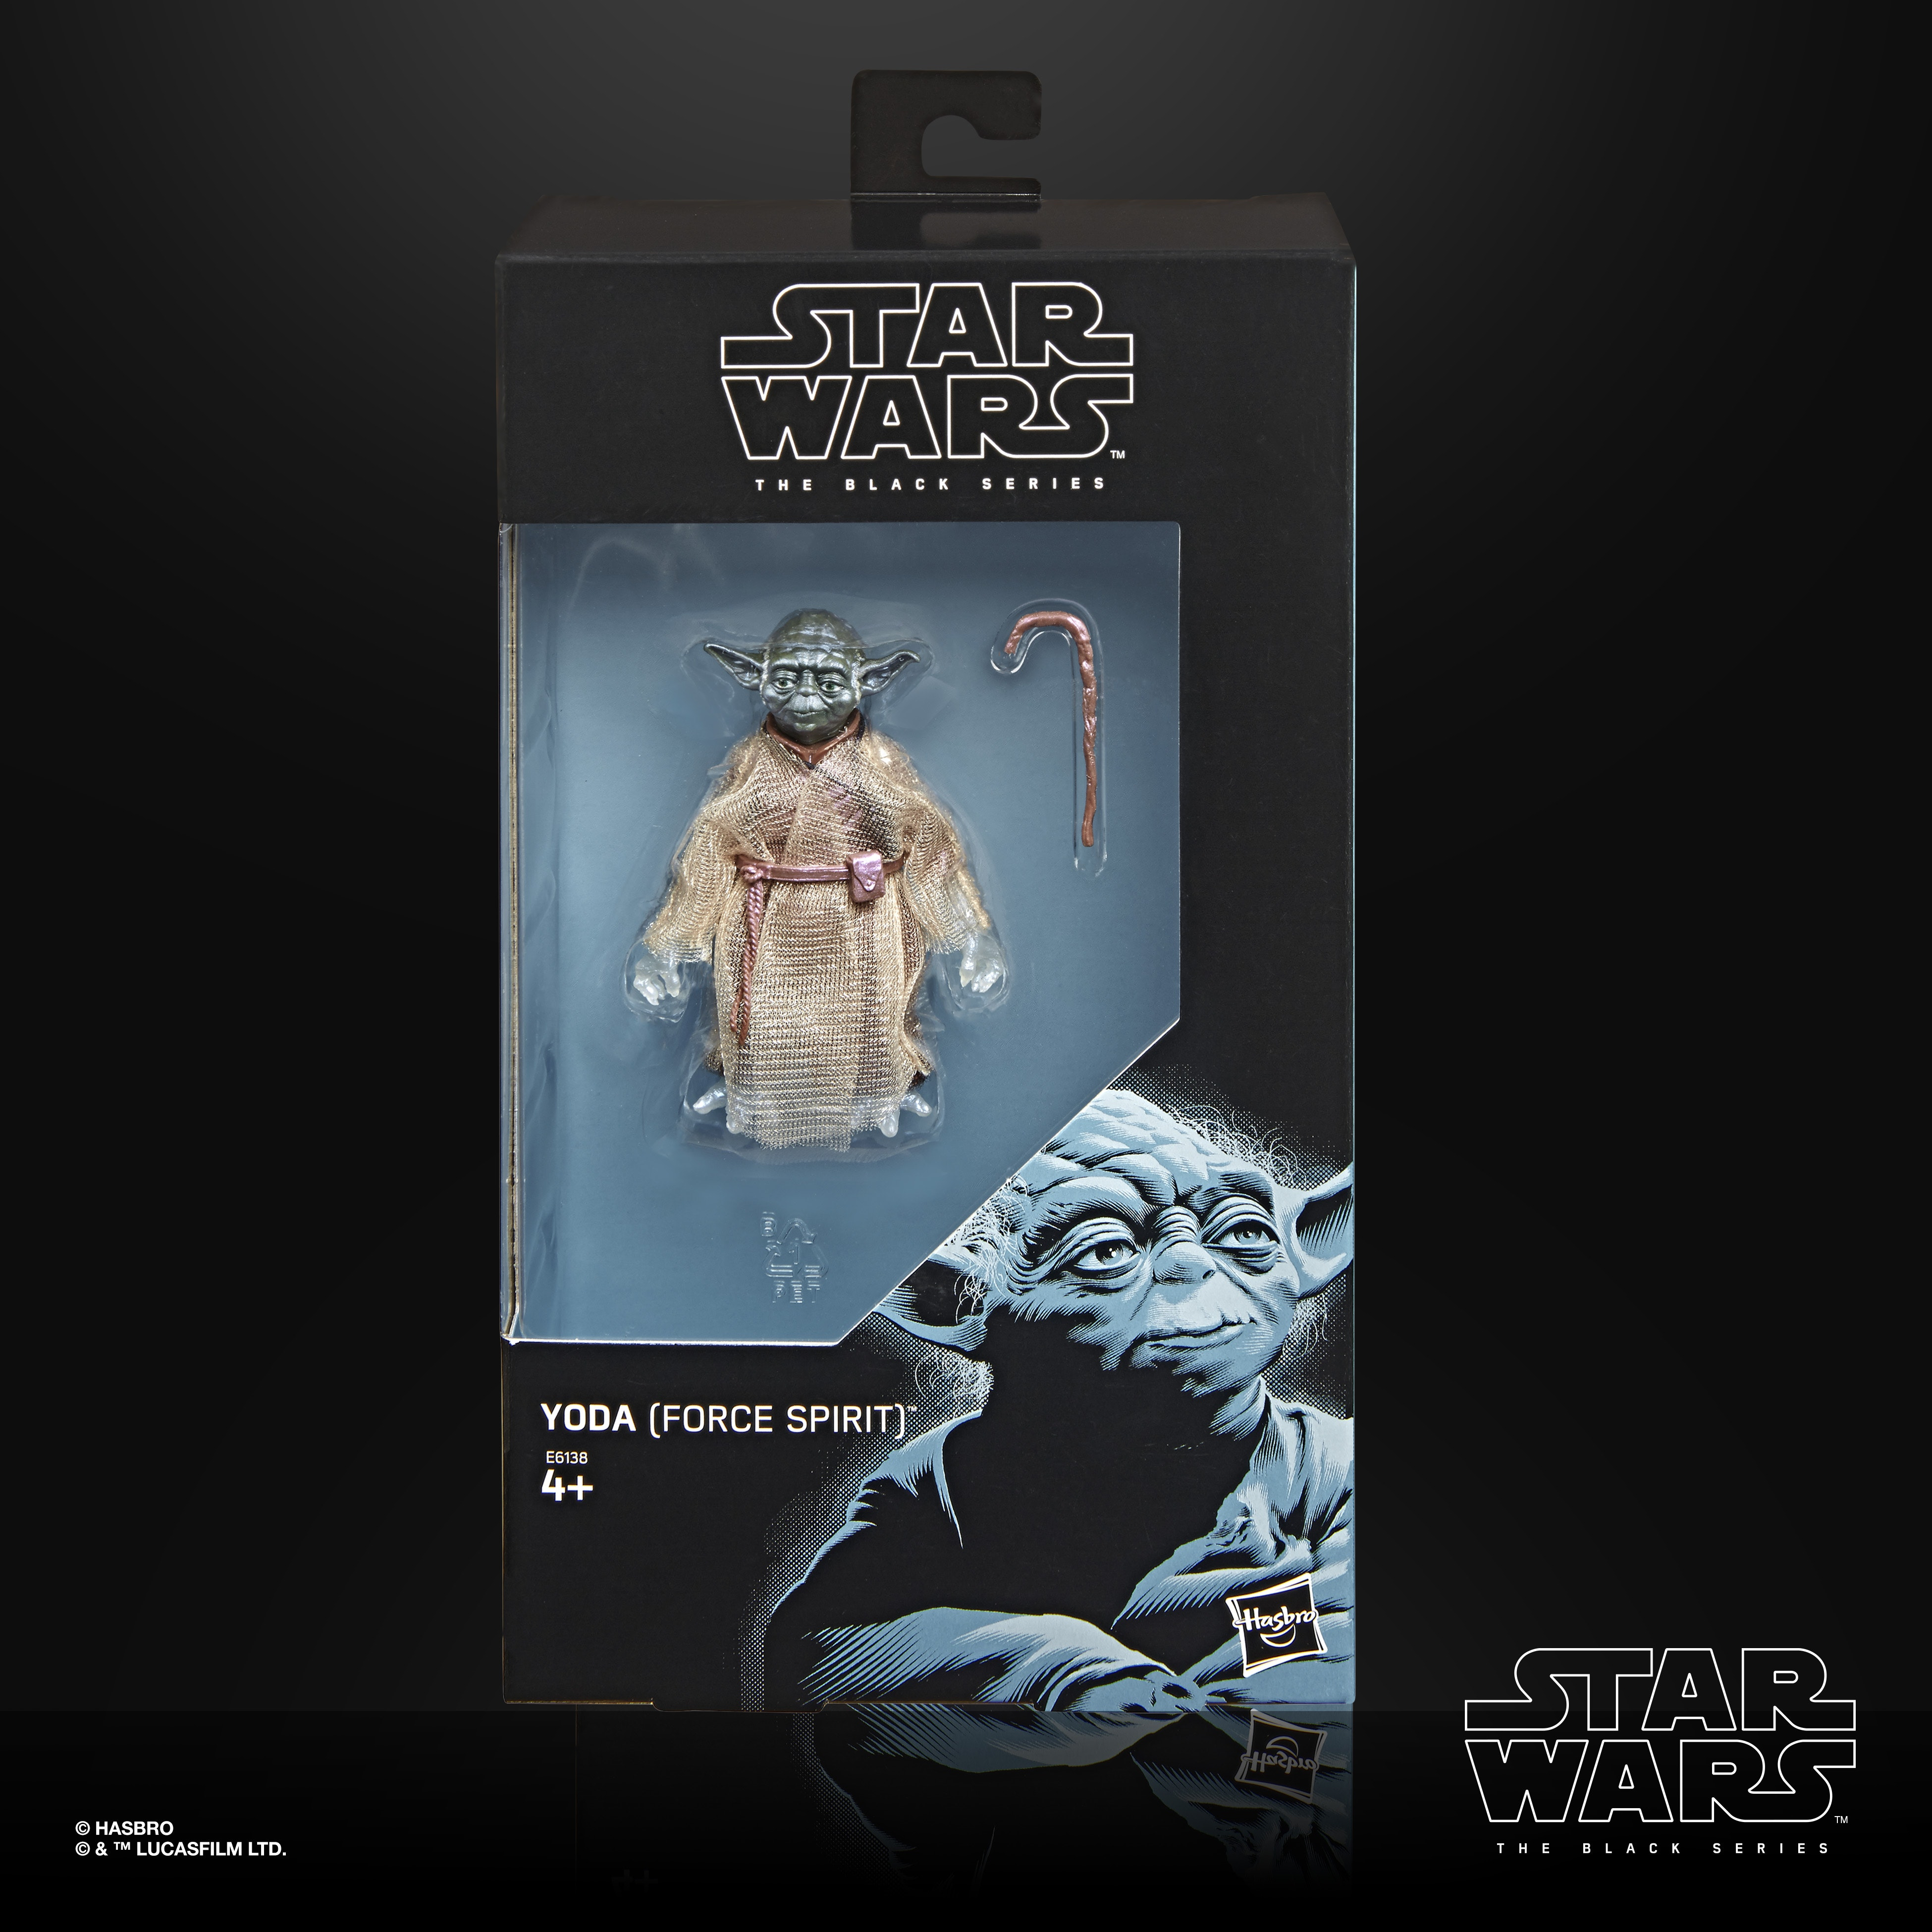 STAR WARS THE BLACK SERIES Yoda Force Spirit